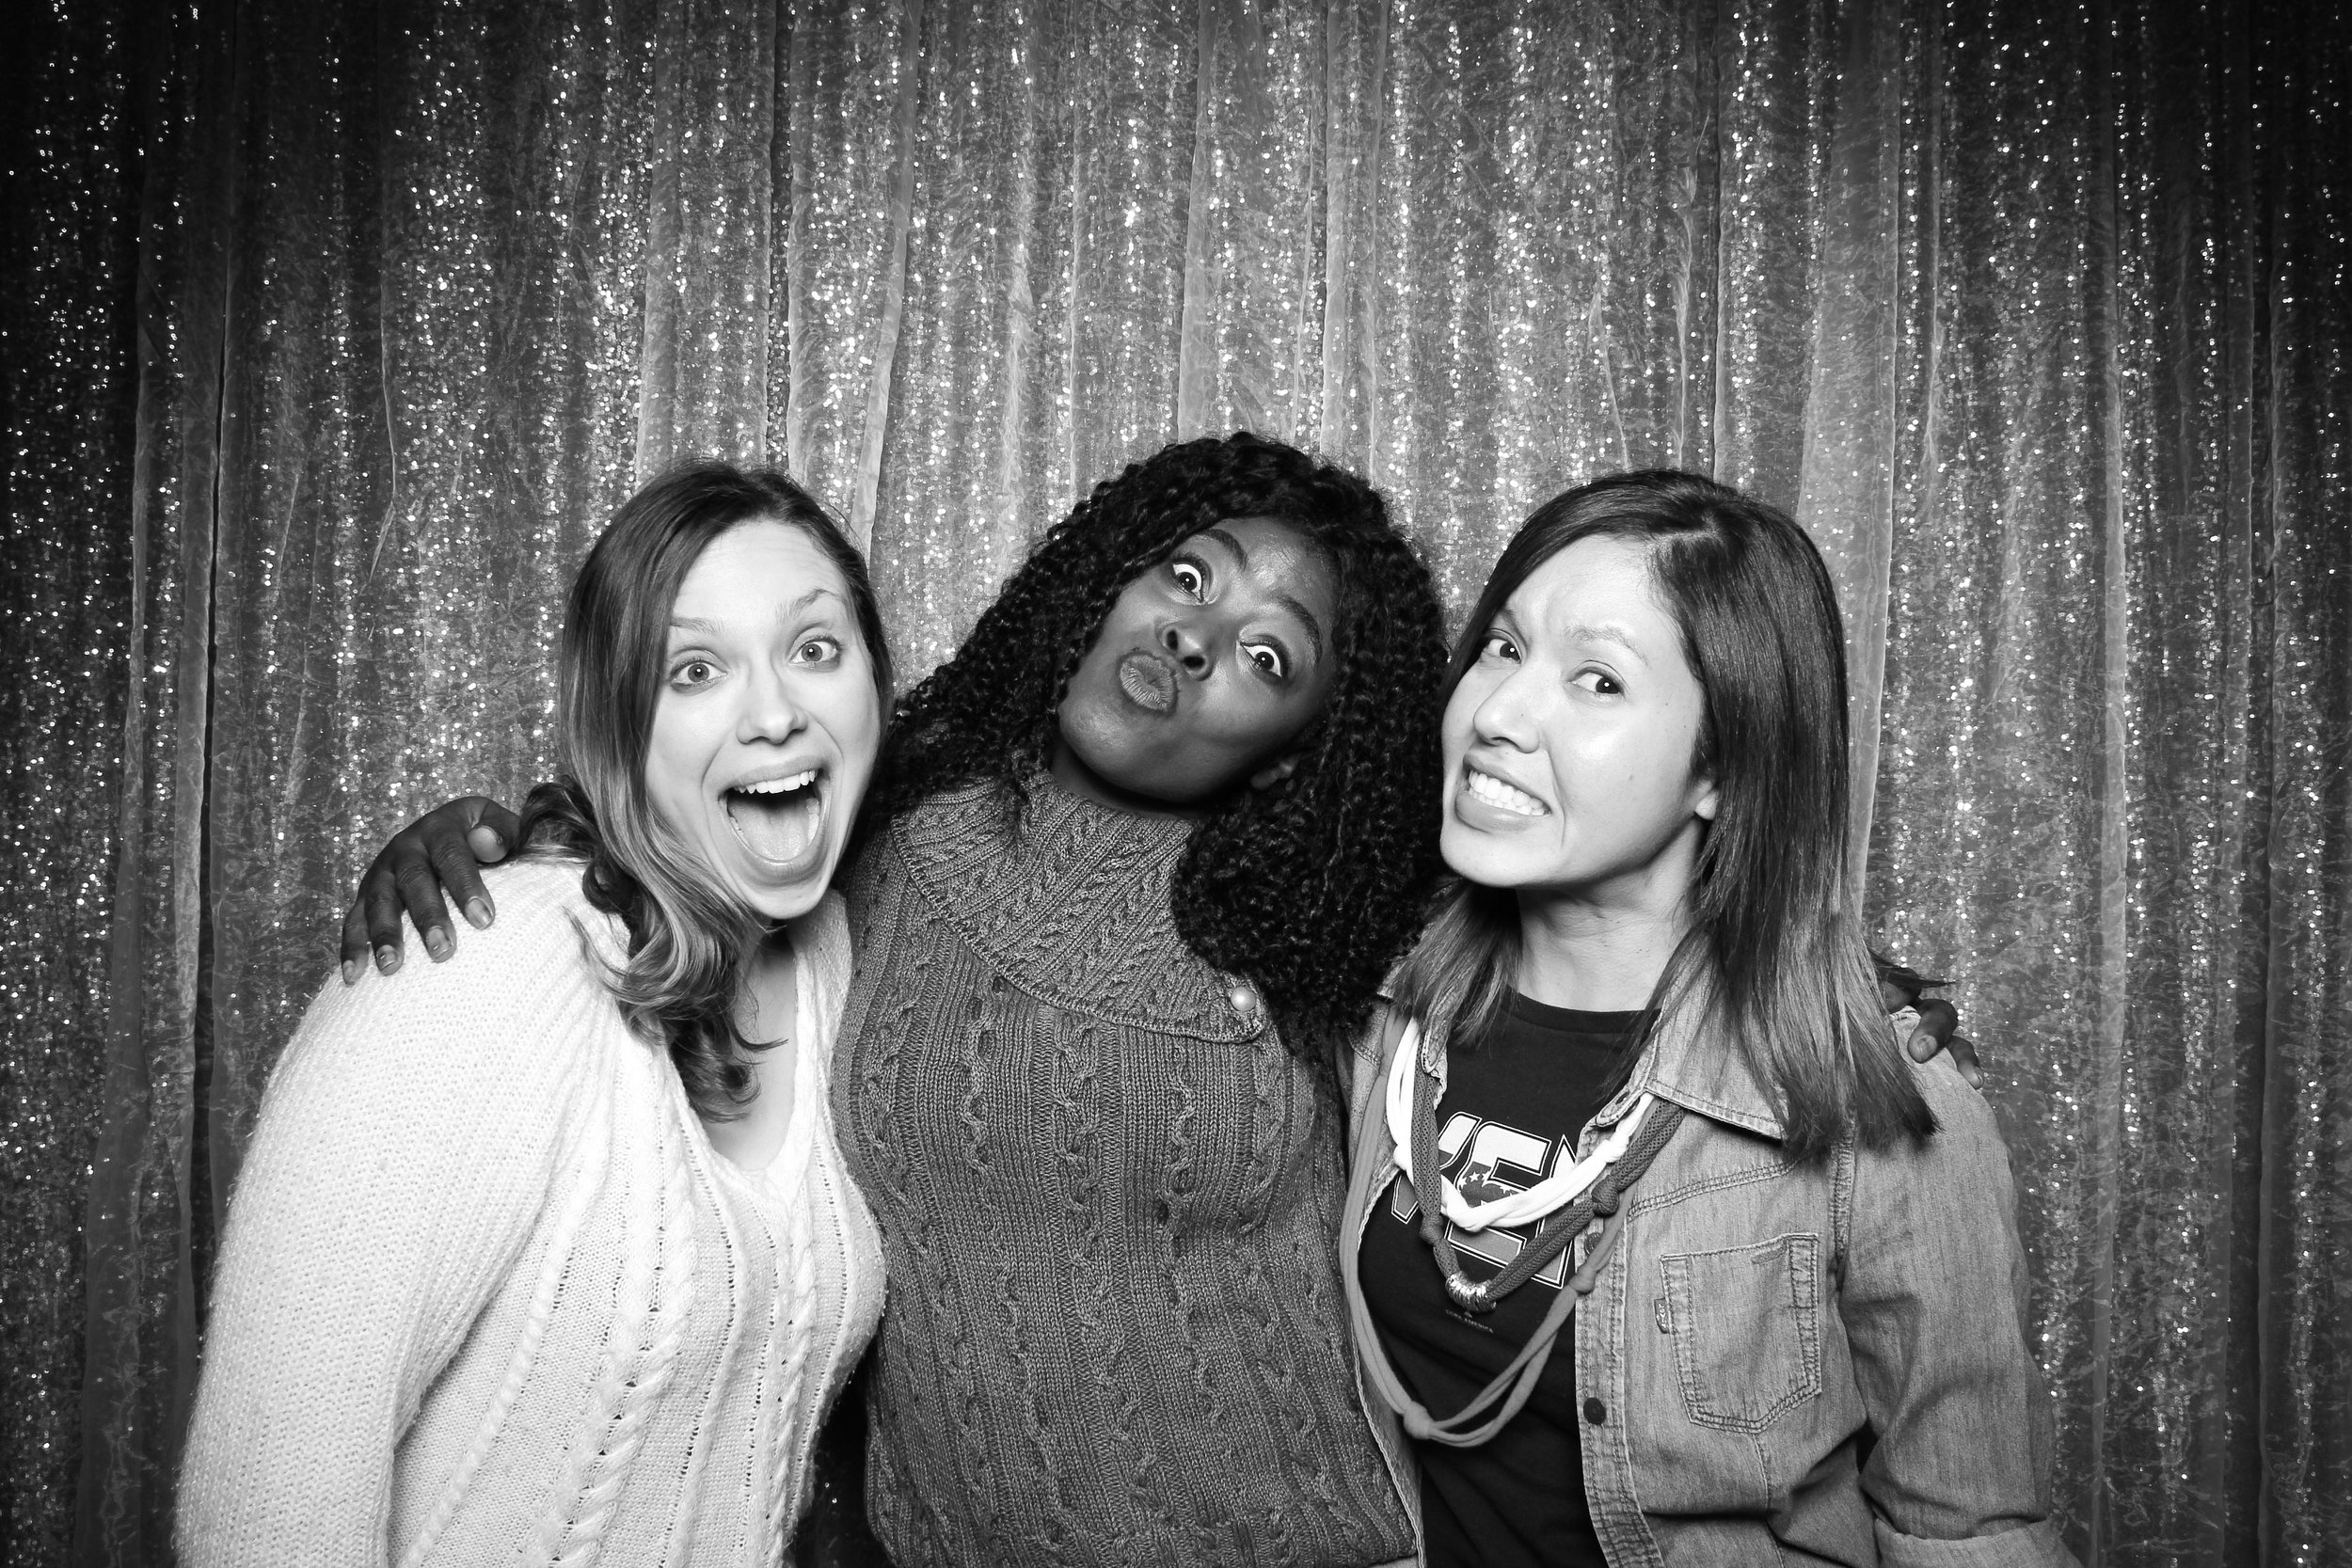 Chicago_Vintage_Wedding_Photobooth_Downers_Grove_15.jpg